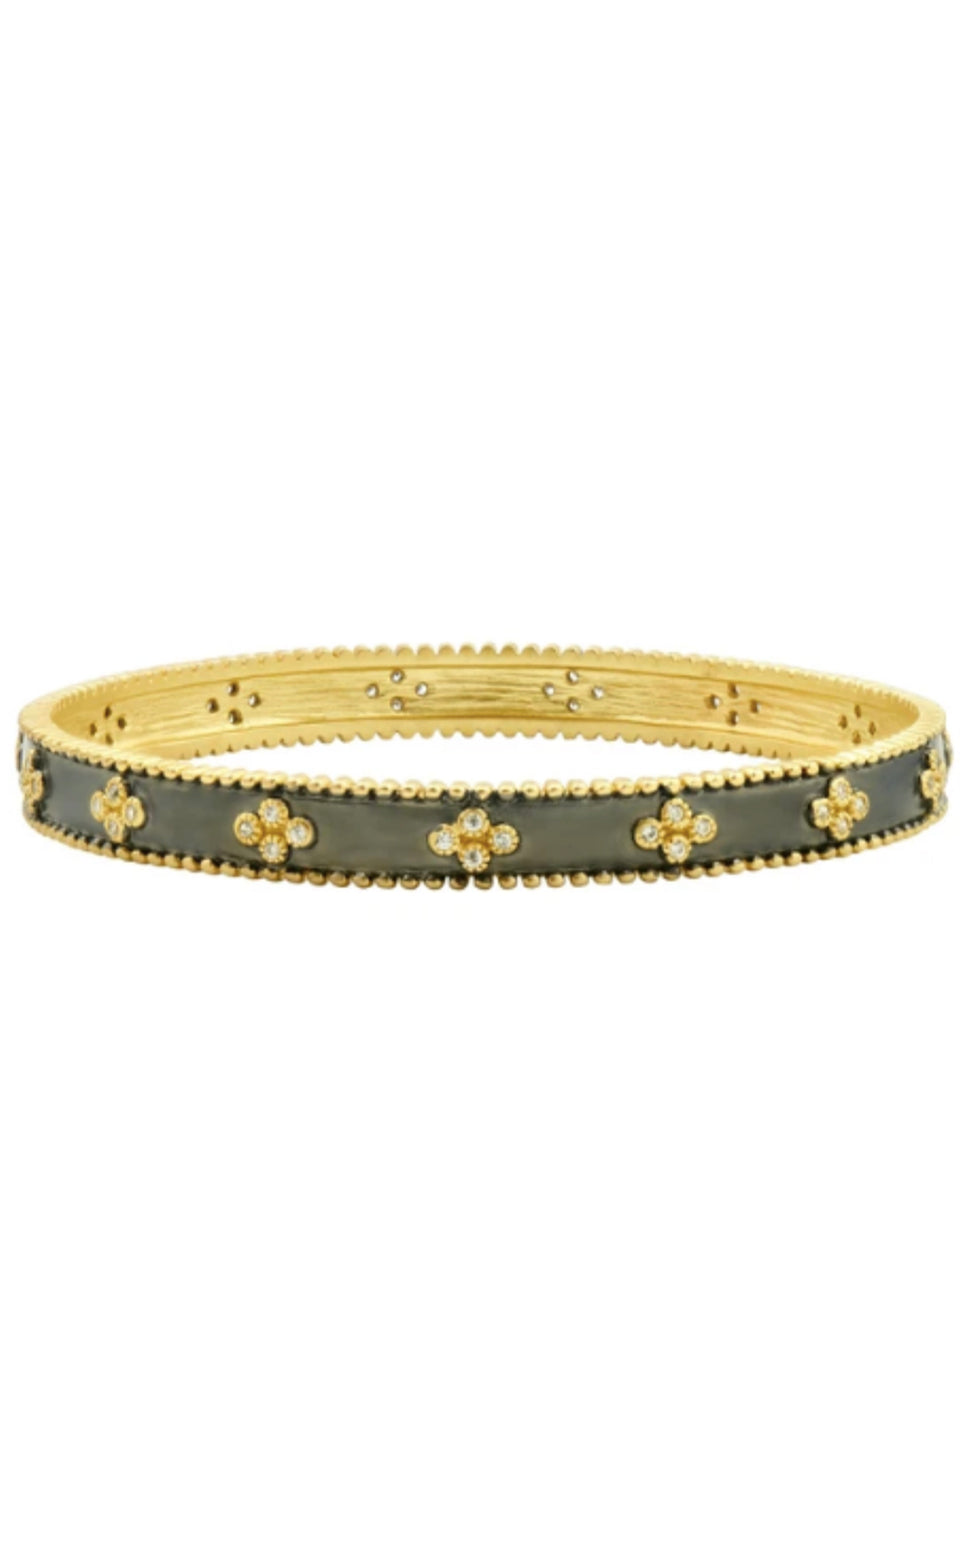 Clover Beaded Bangle - Gold and Black